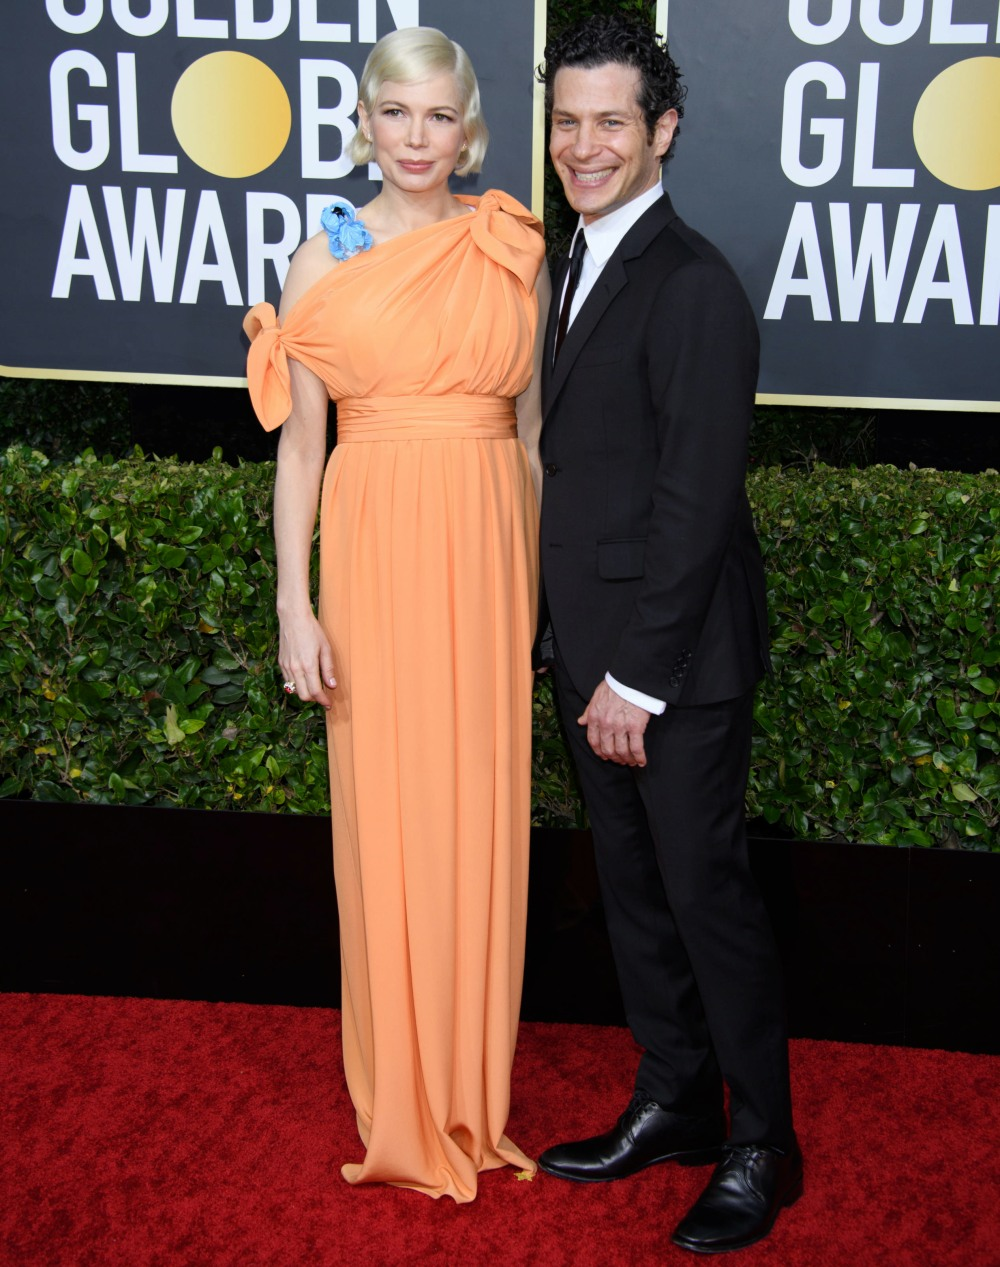 Nominee Michelle Williams and Thomas Kail arrivesat the 77th Annual Golden Globe Awards at the Beverly Hilton in Beverly Hills, CA on Sunday, January 5, 2020.